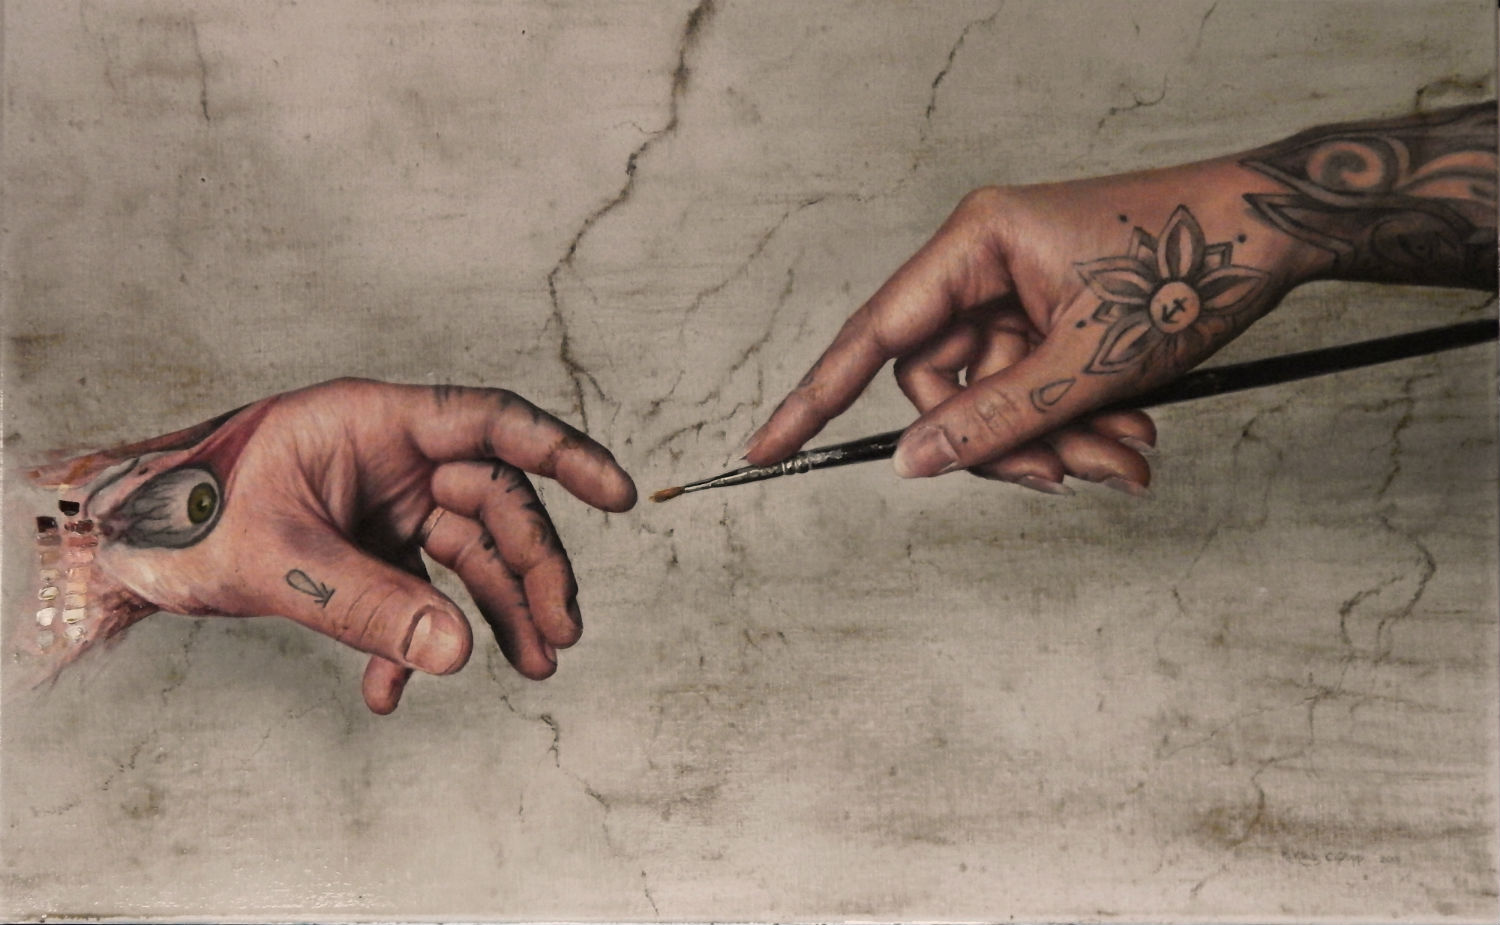 kit king new work hyper realist painting hand god